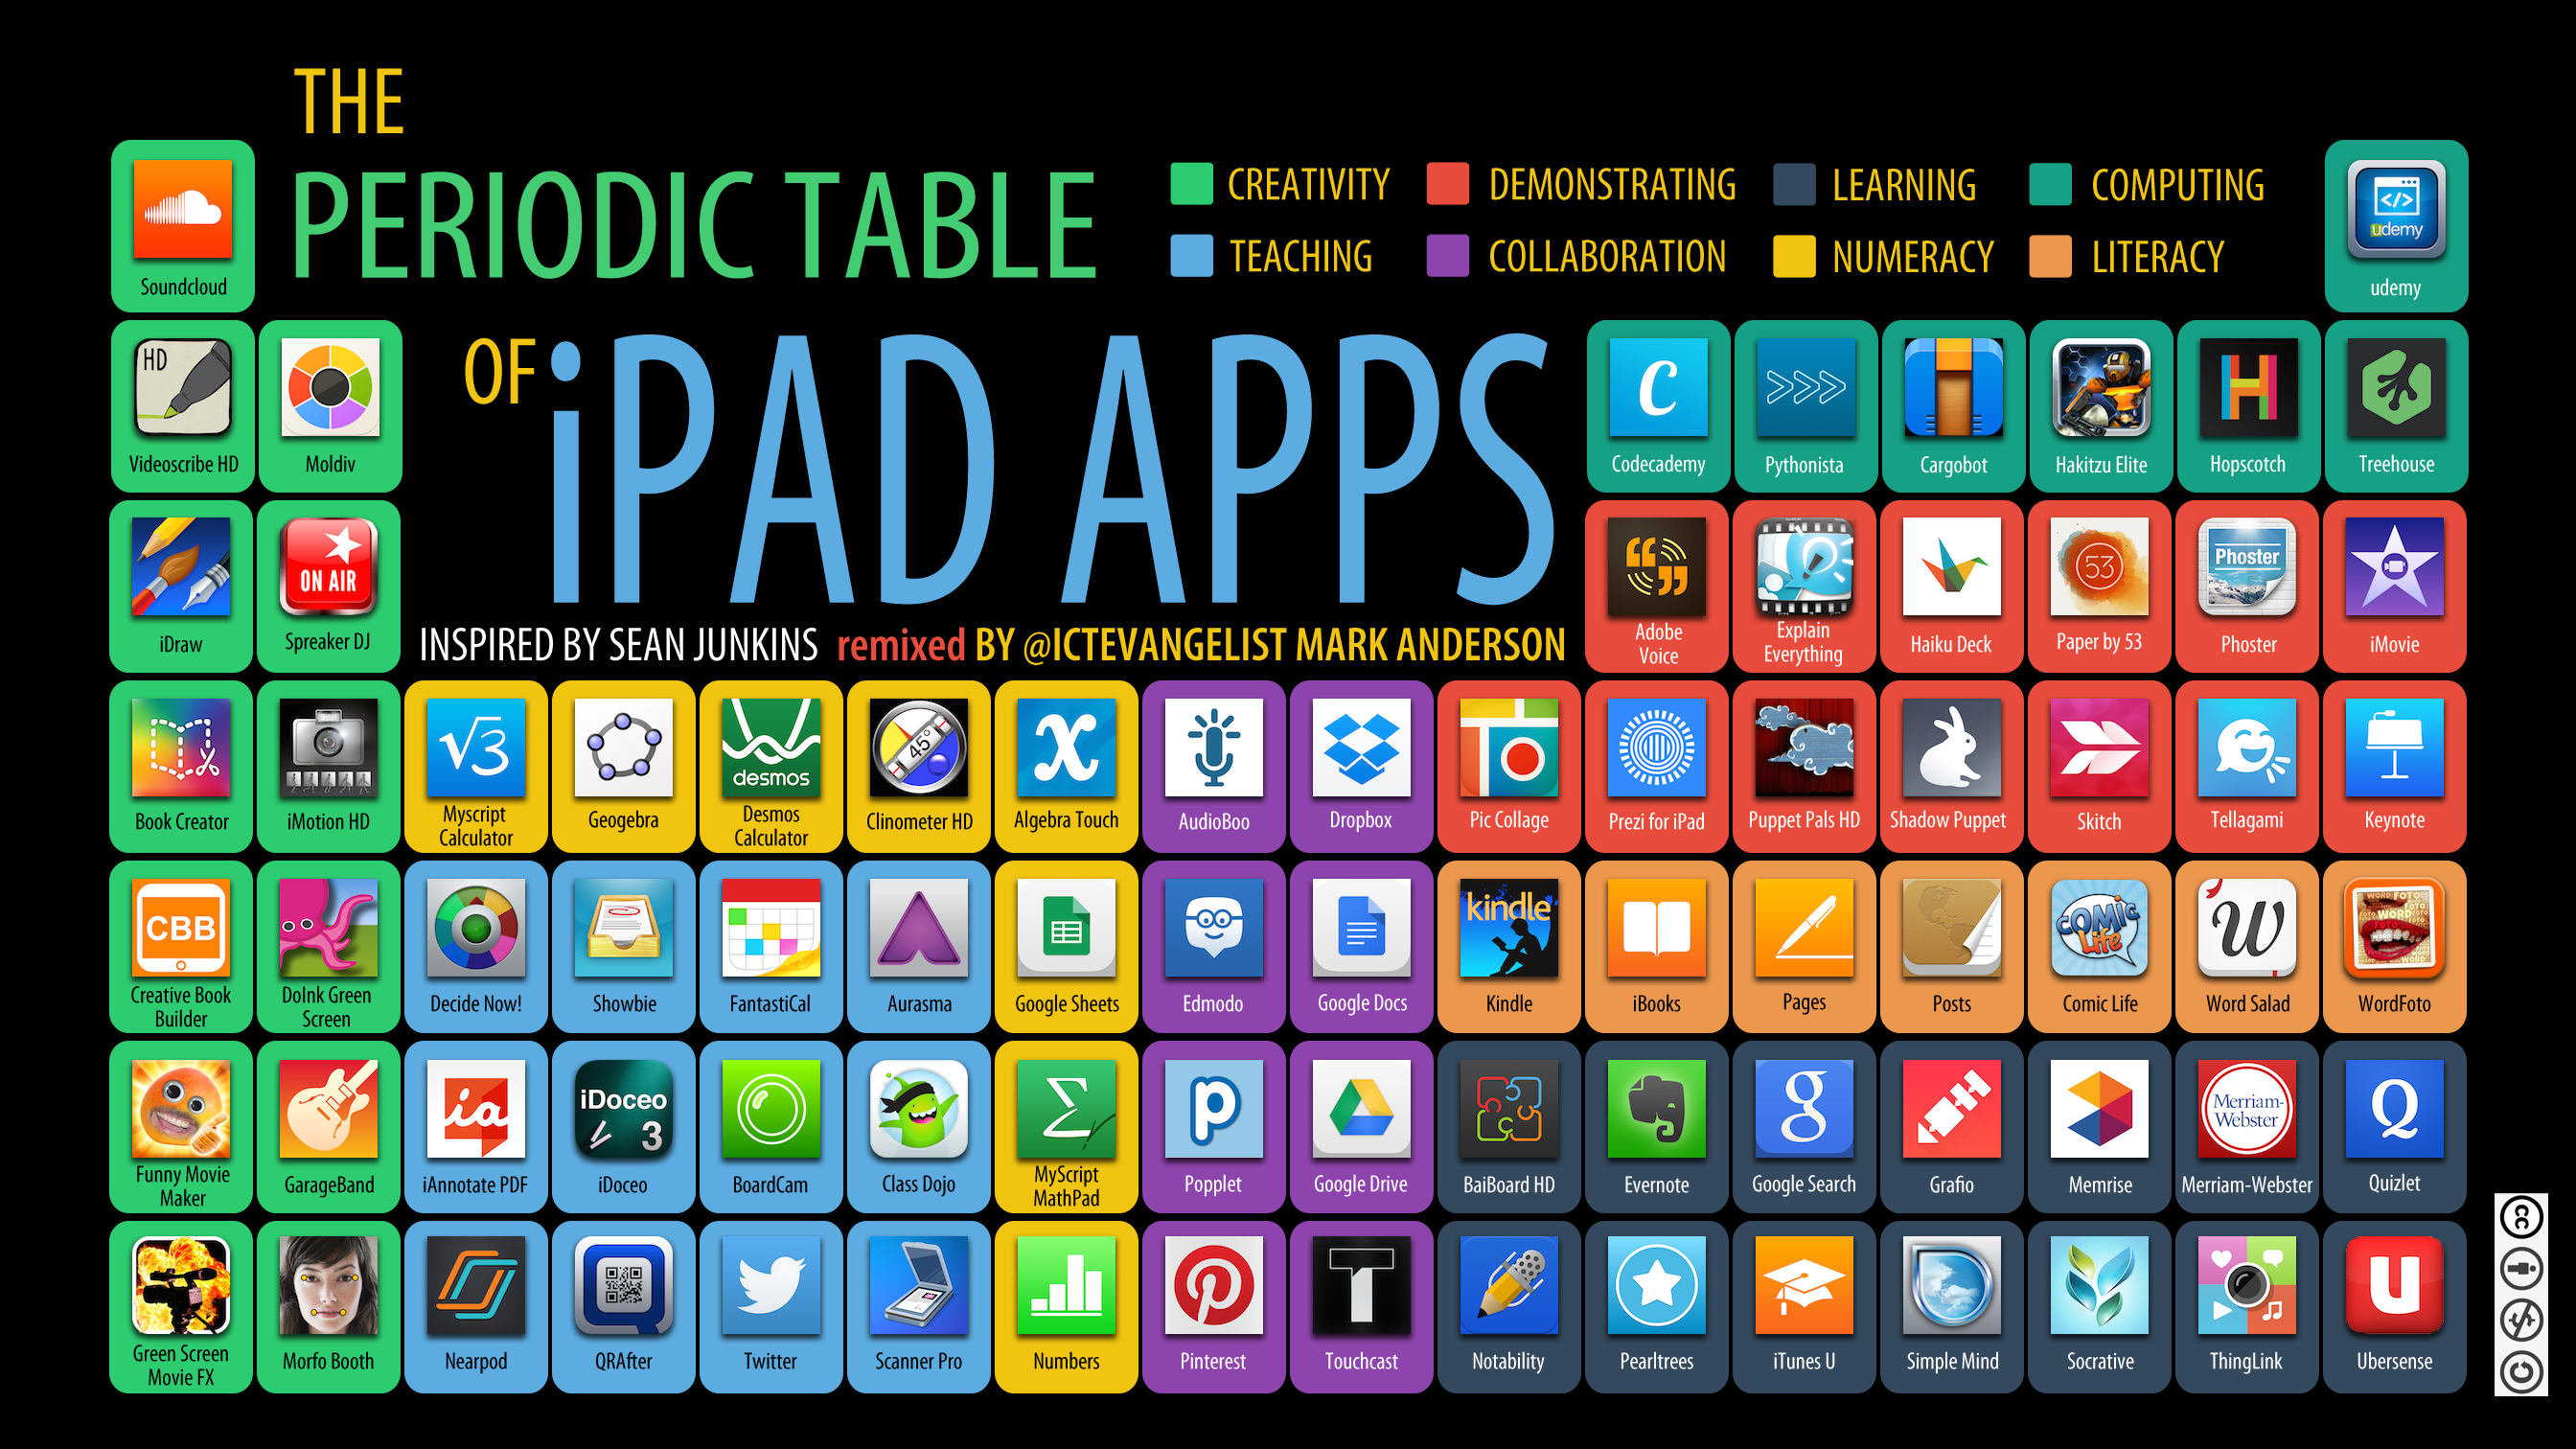 ipad apps - Periodic Table Video Song Free Download